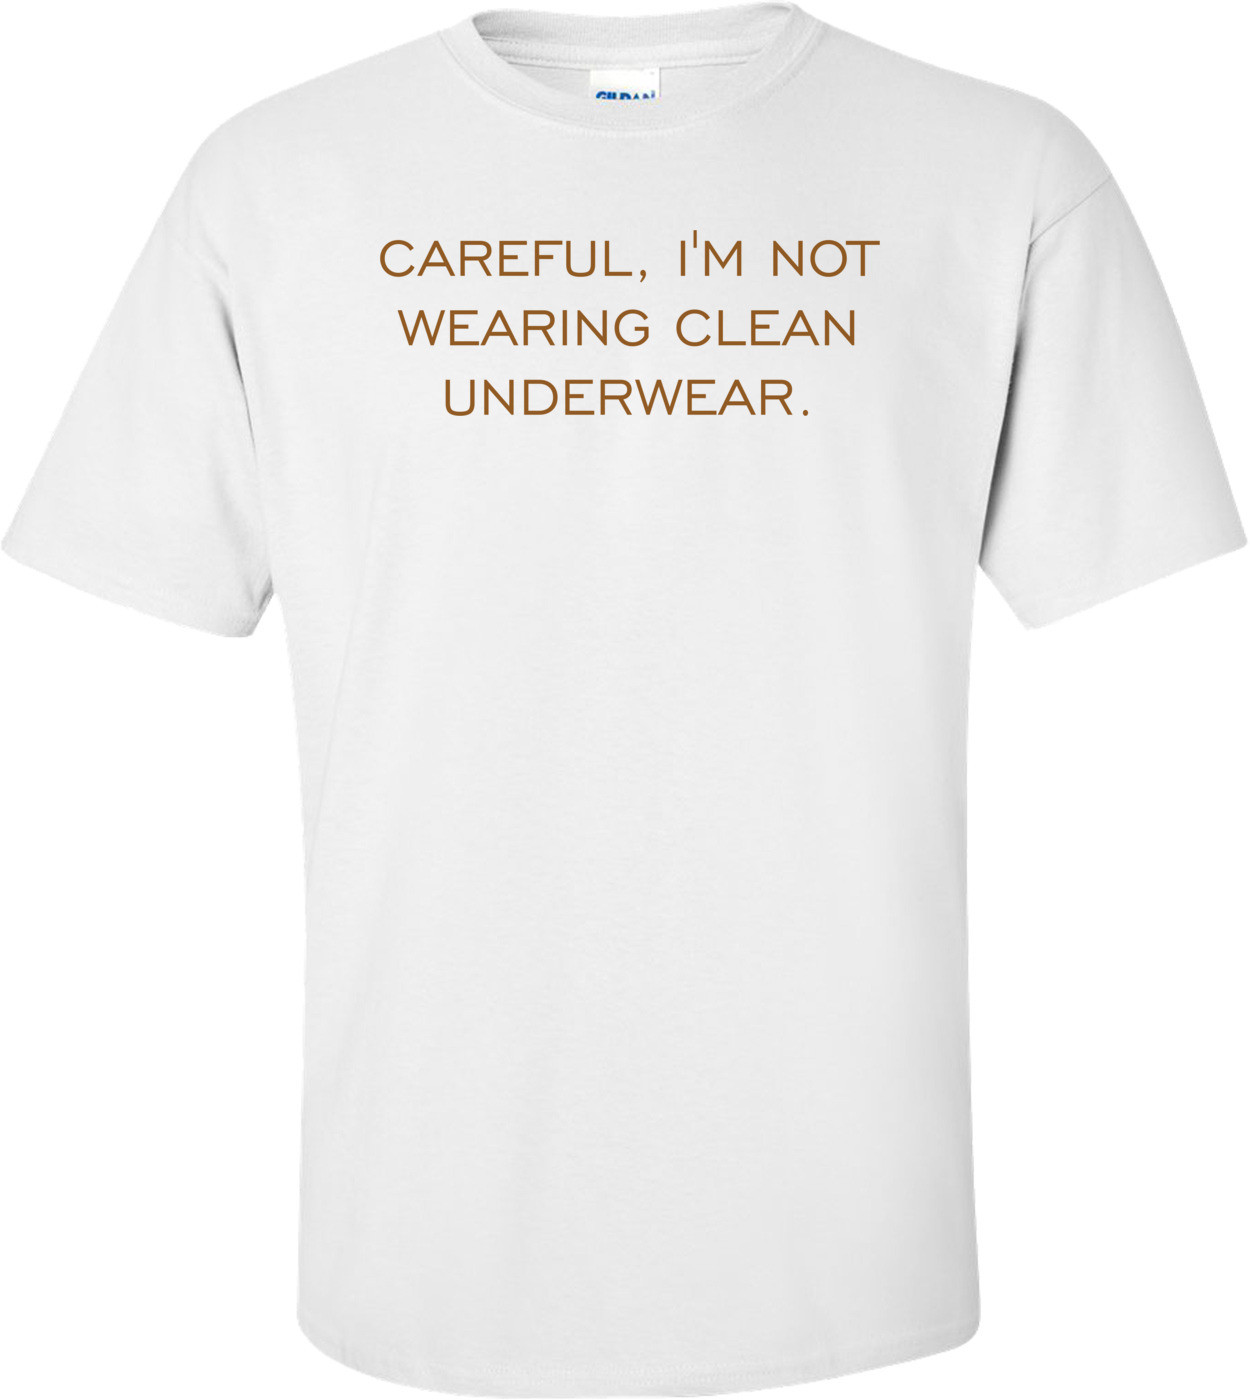 CAREFUL, I'M NOT WEARING CLEAN UNDERWEAR. Shirt